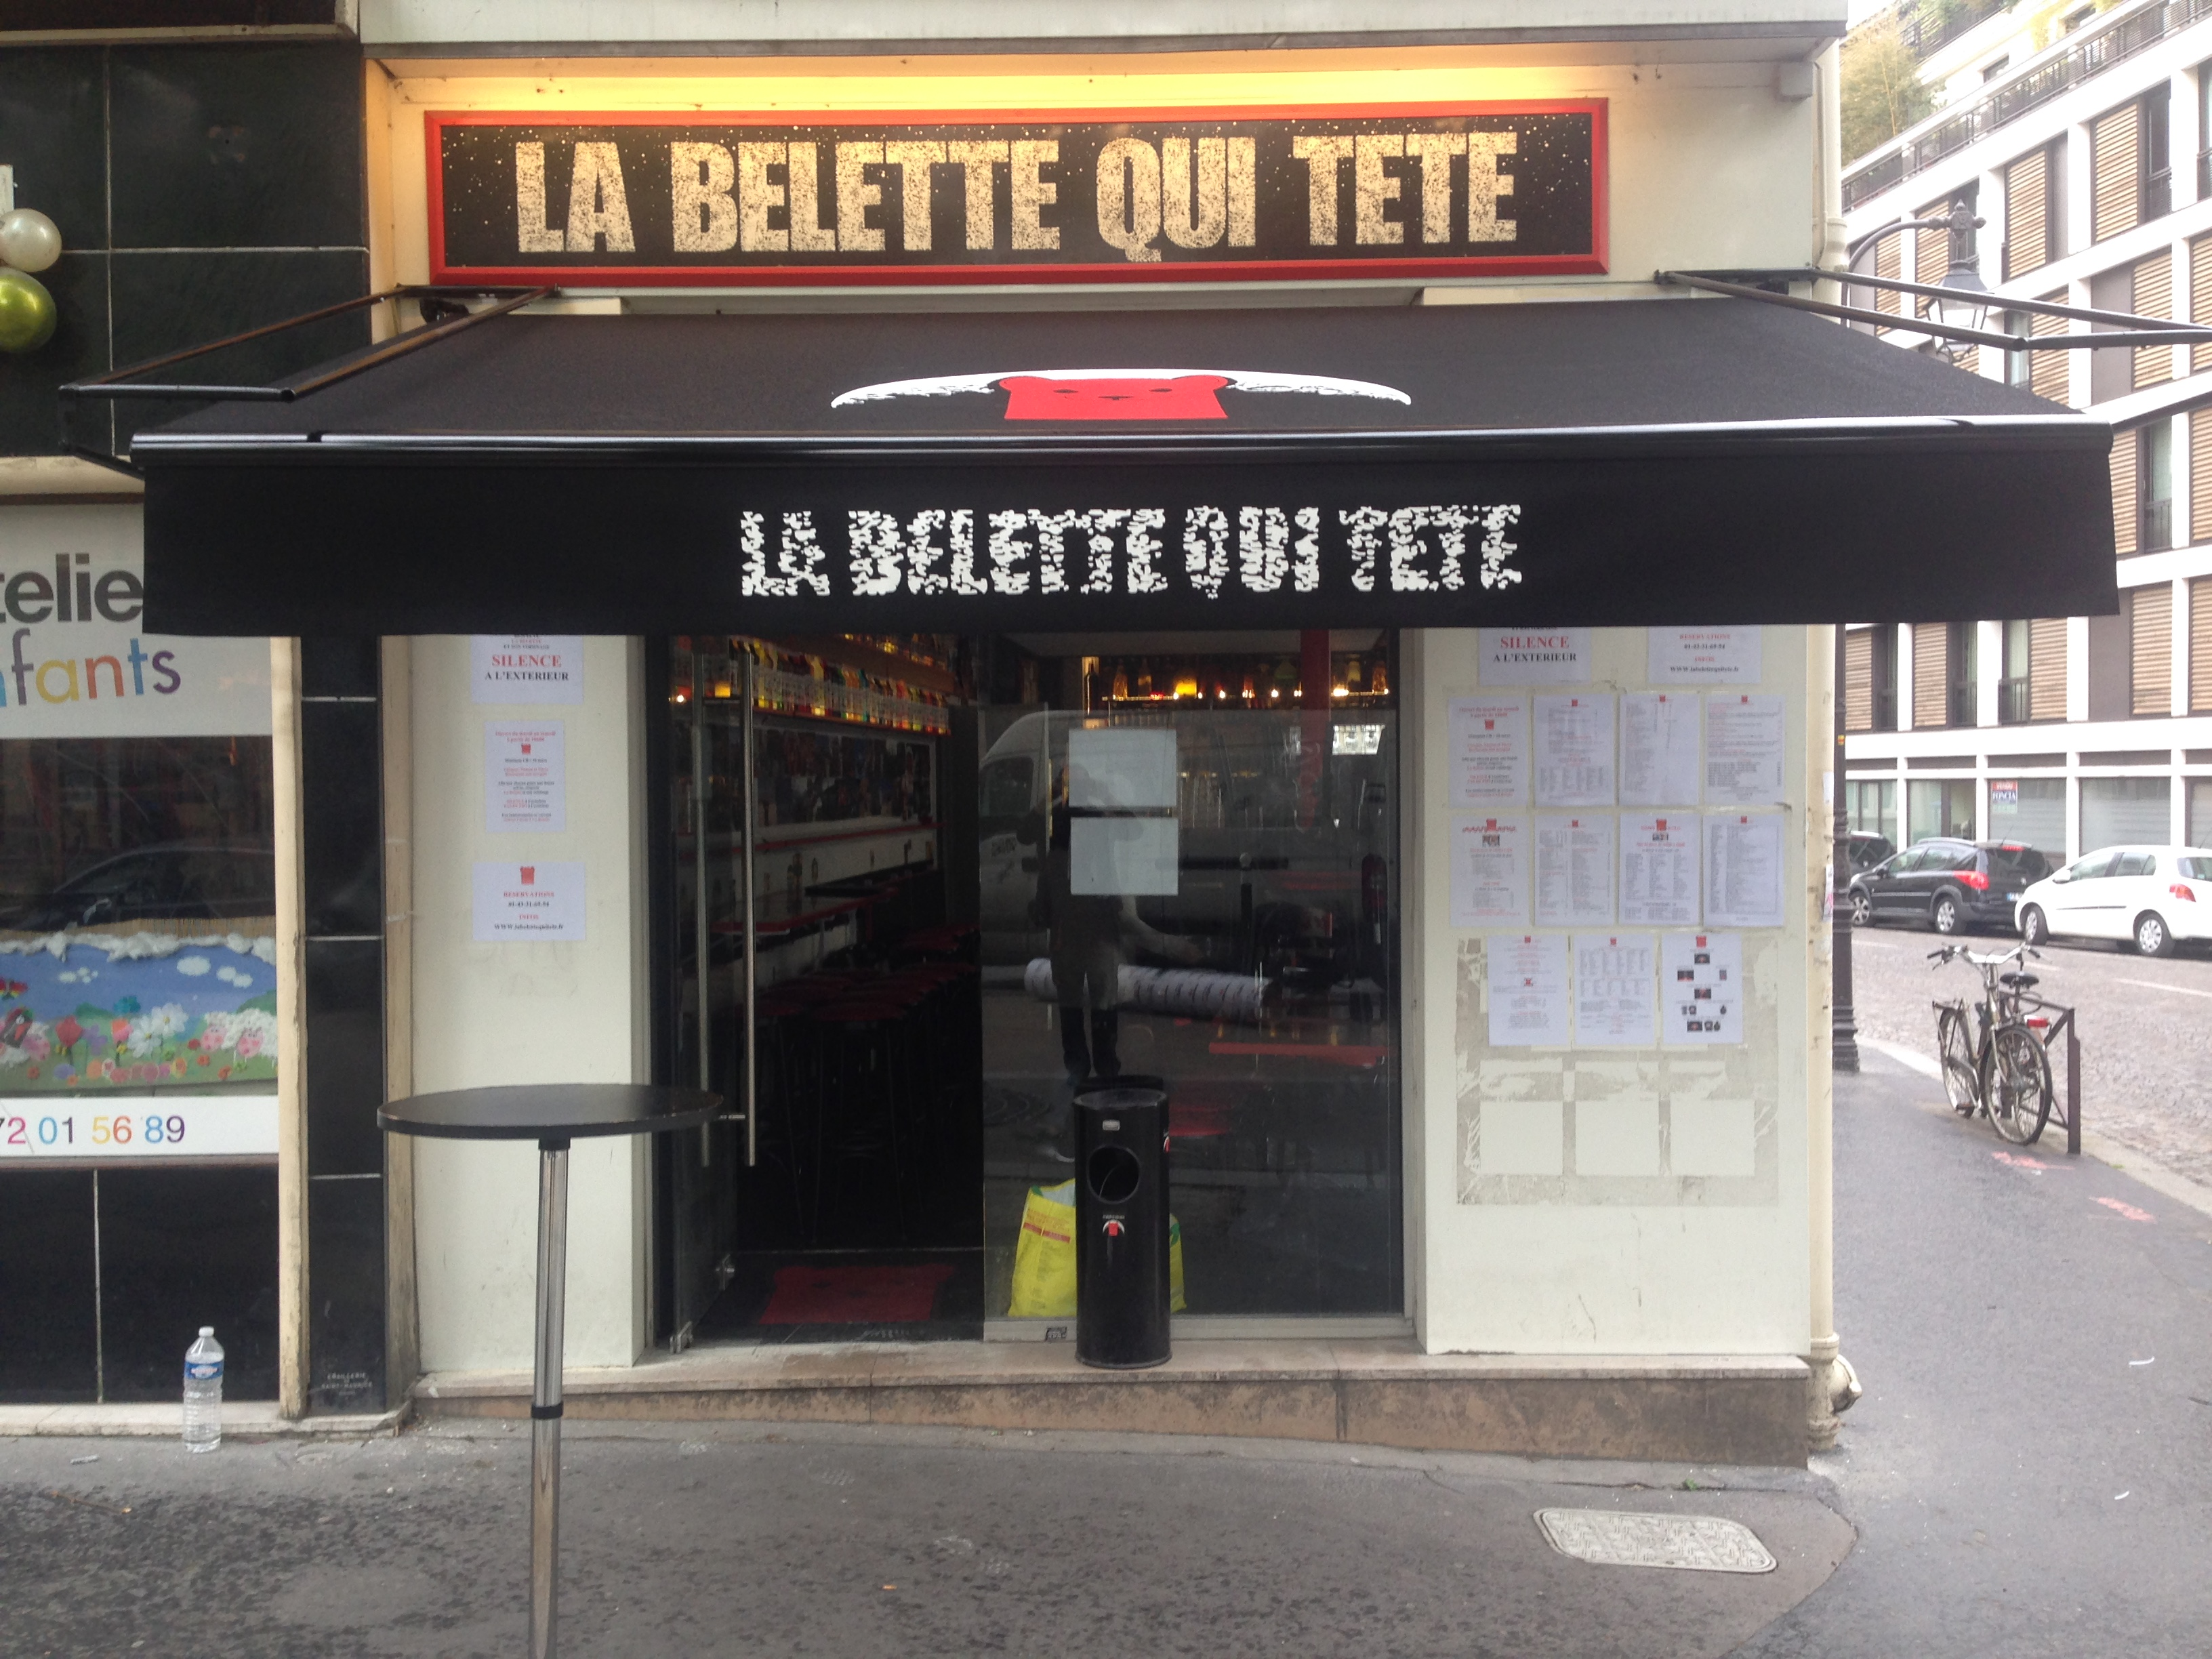 La belette qui tete store ext rieur storiste arc en for Showroom cuisine paris